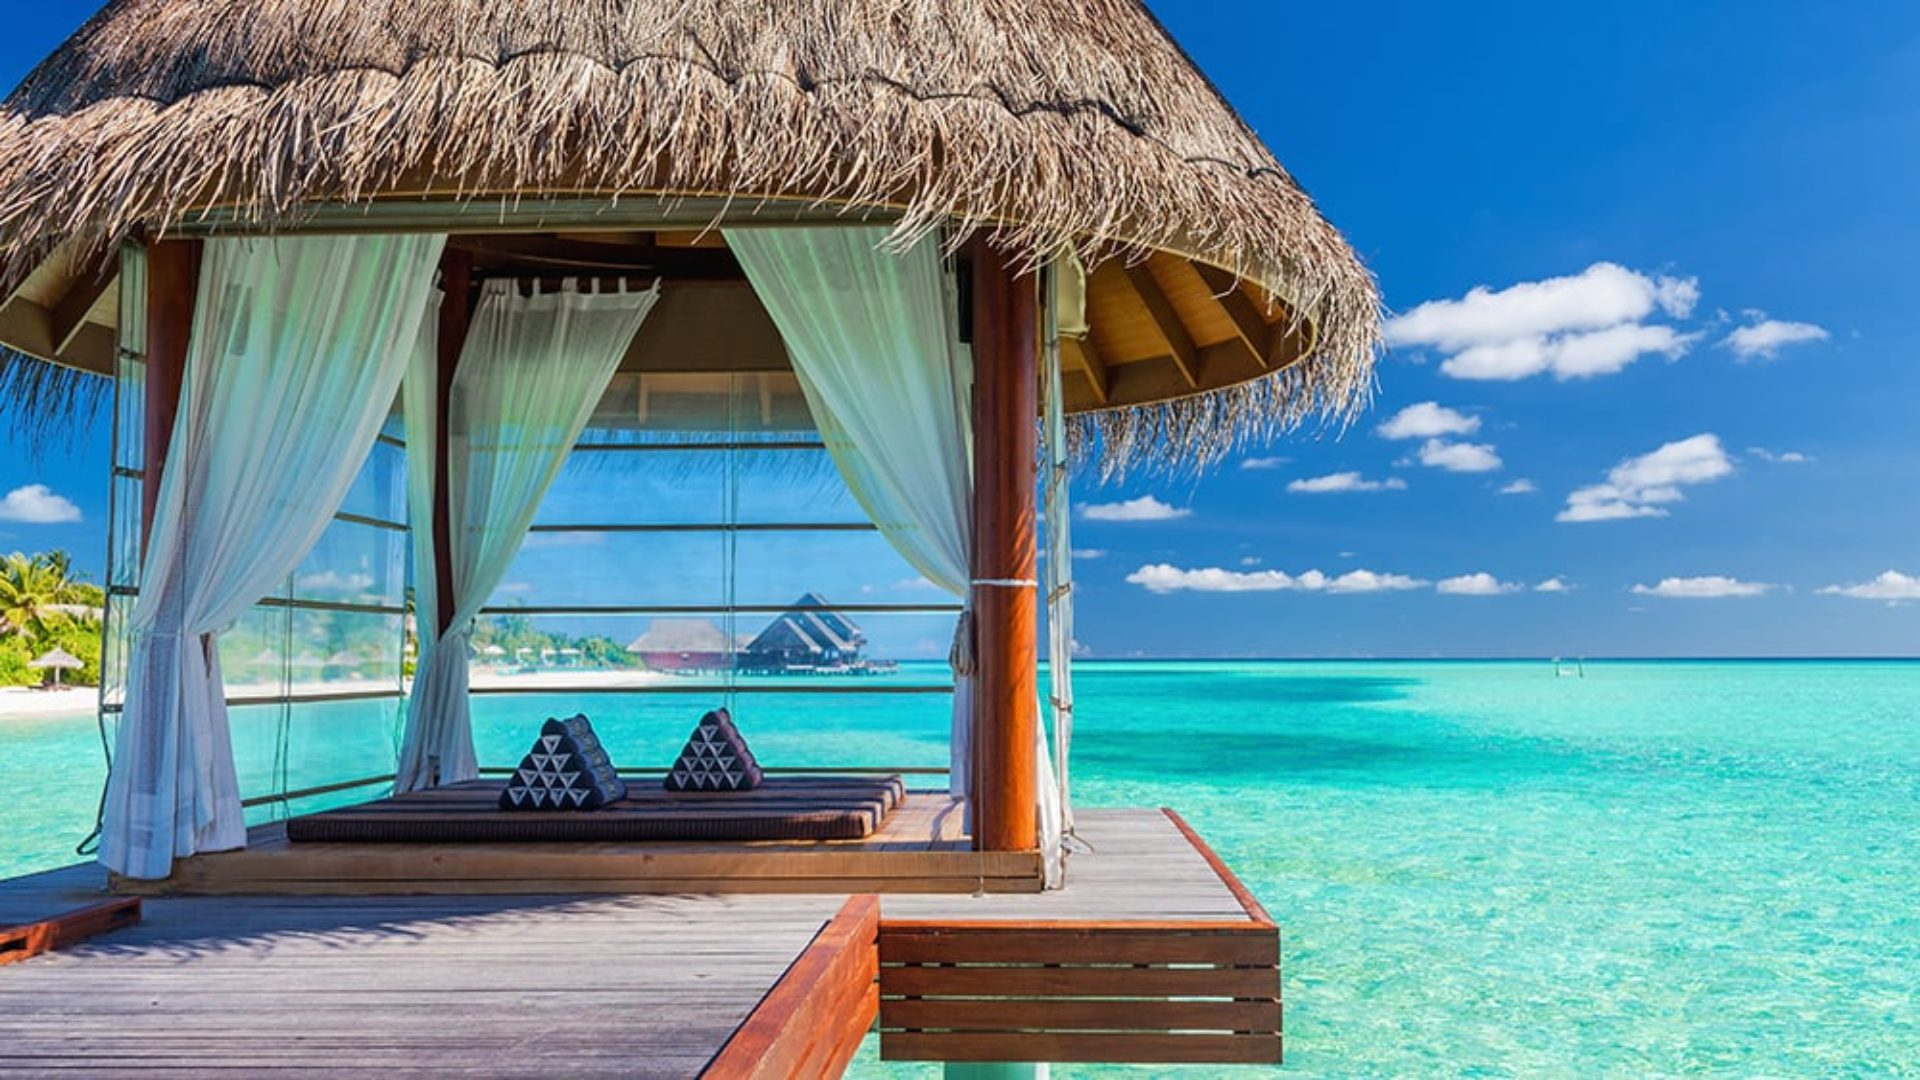 Overwater yoga pavilion in the Maldives